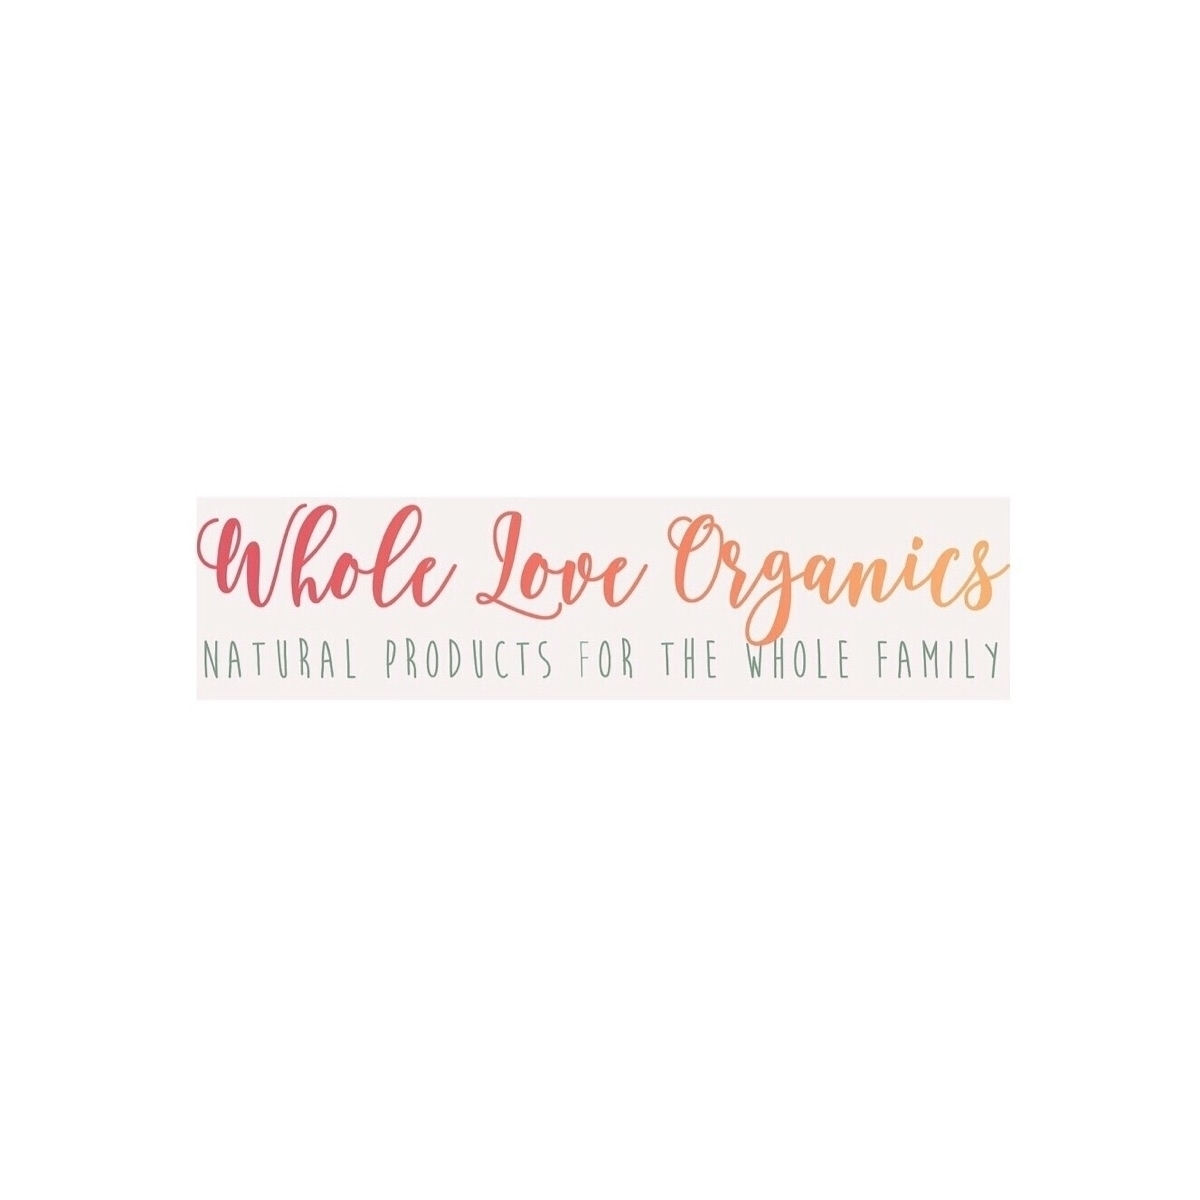 Whole Love Organics (@wholeloveorganics) Cover Image